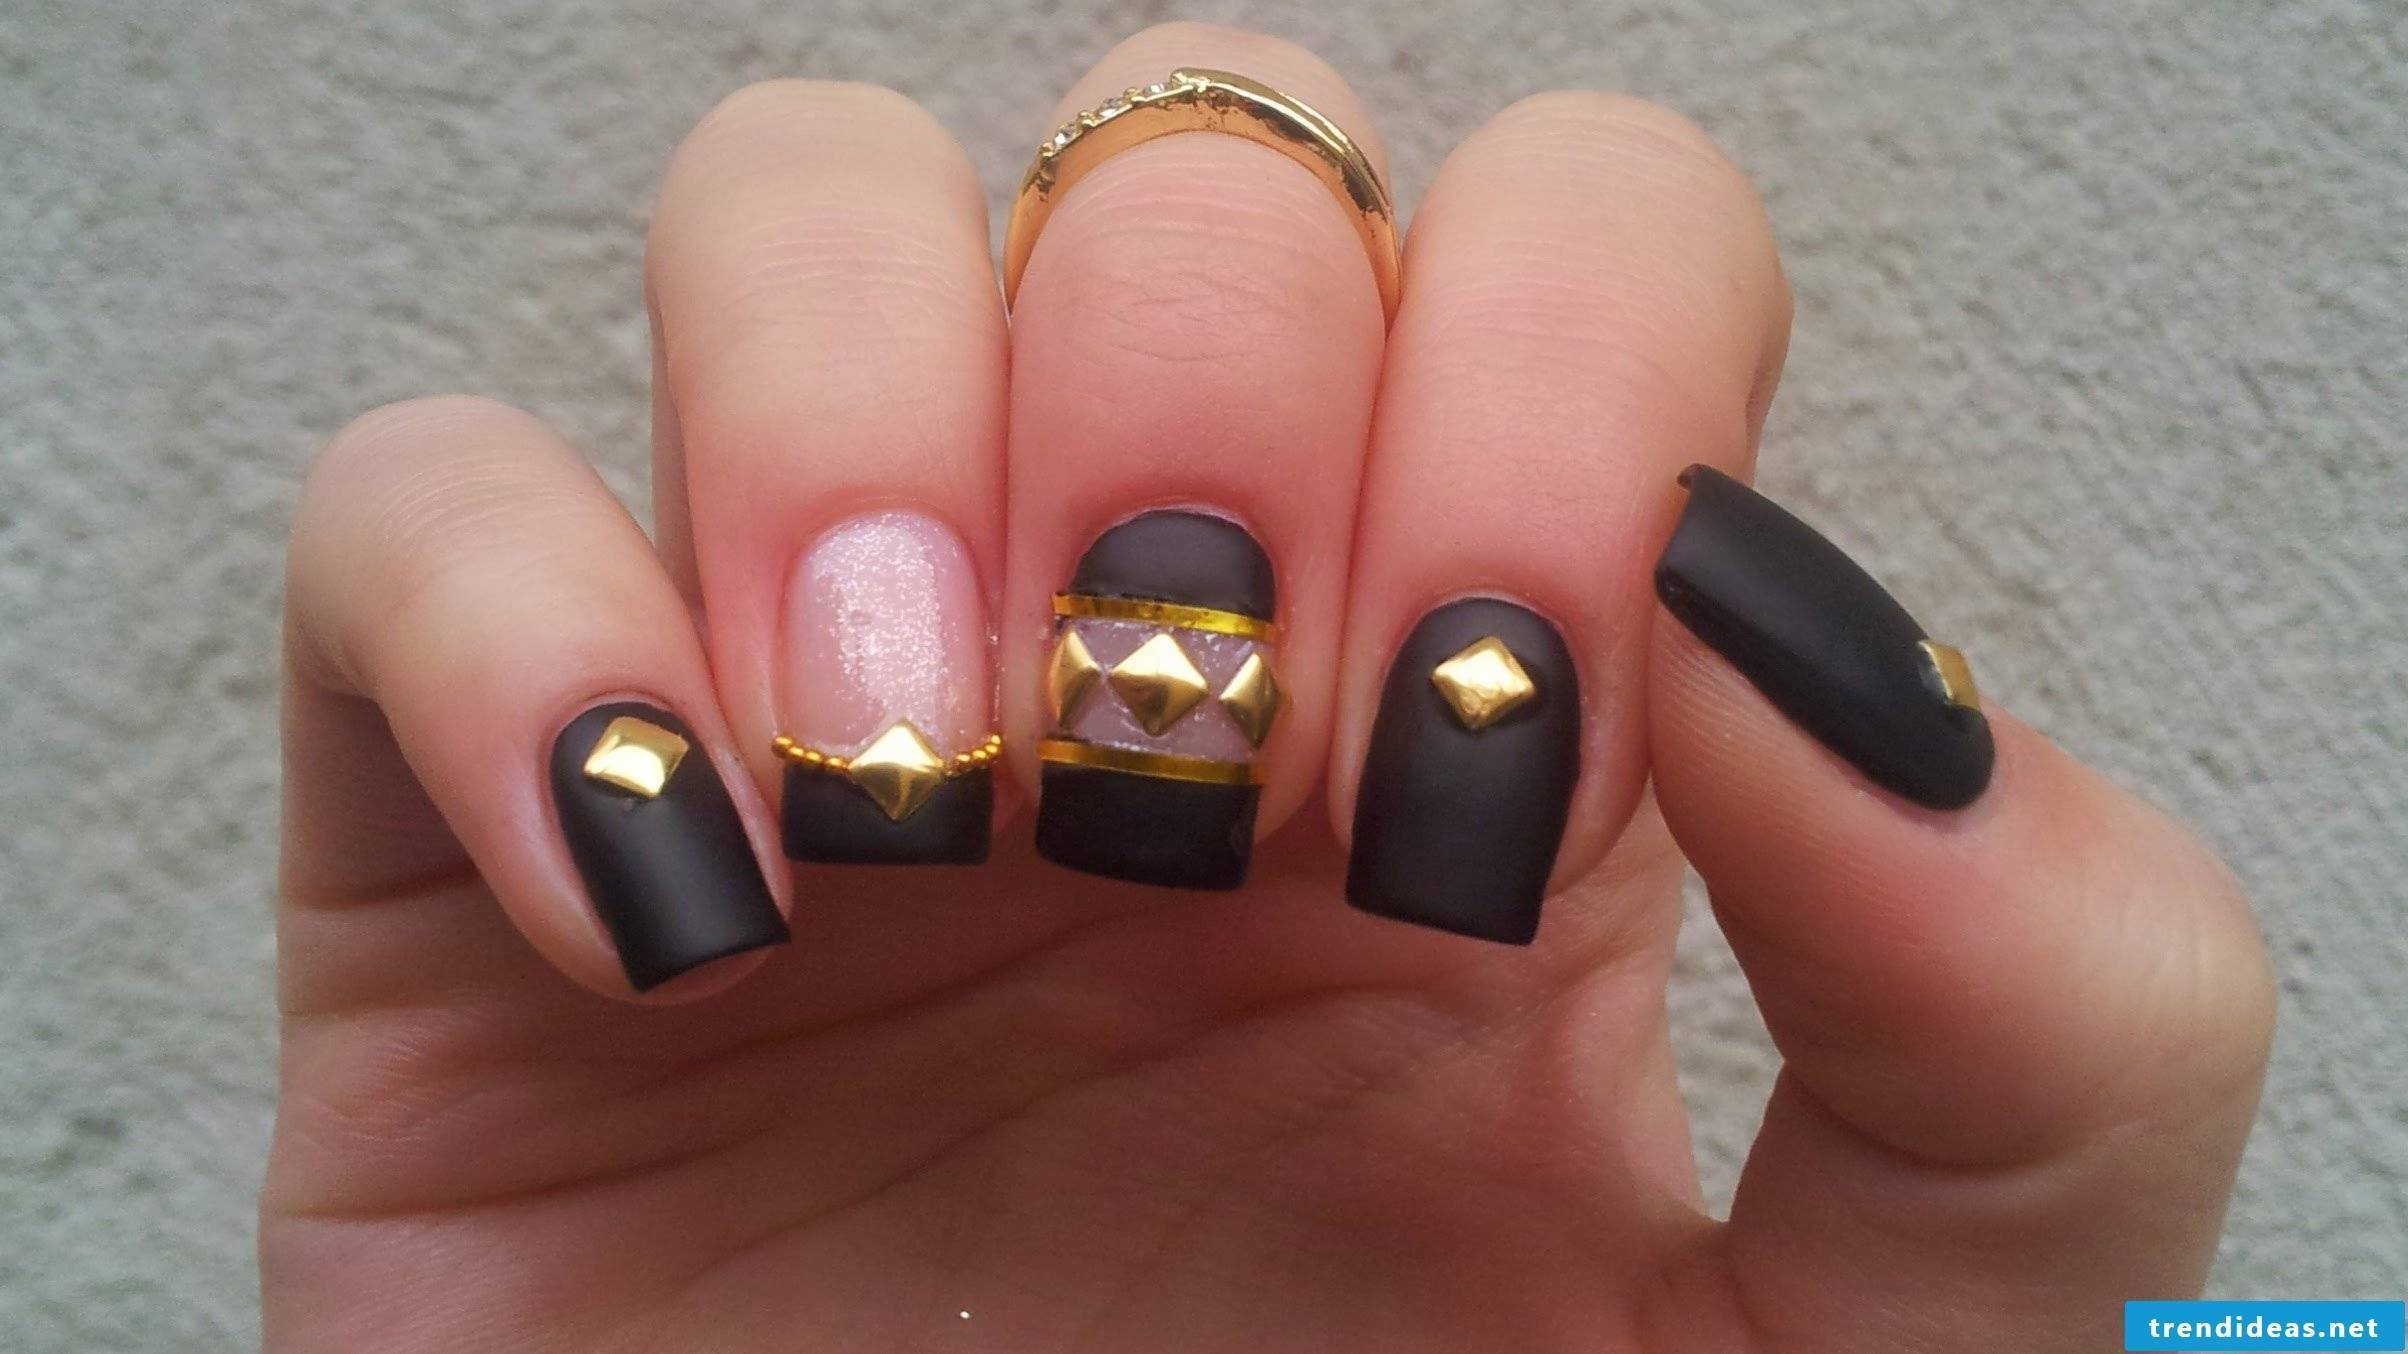 Beautiful nails with gold elements